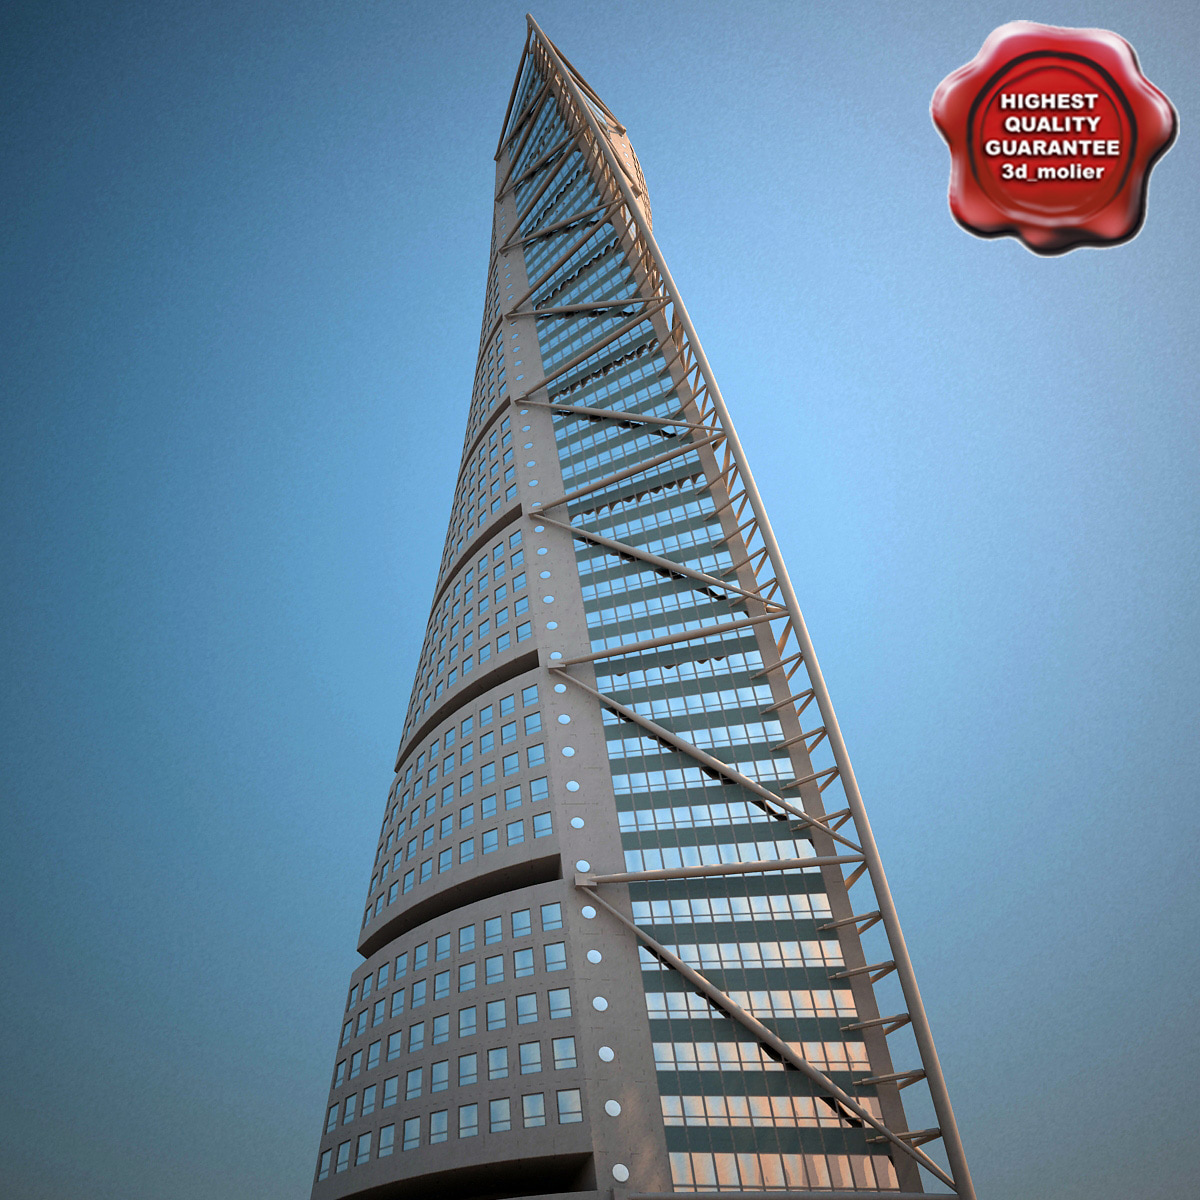 HSB_Turning_Torso_Building_00.jpg